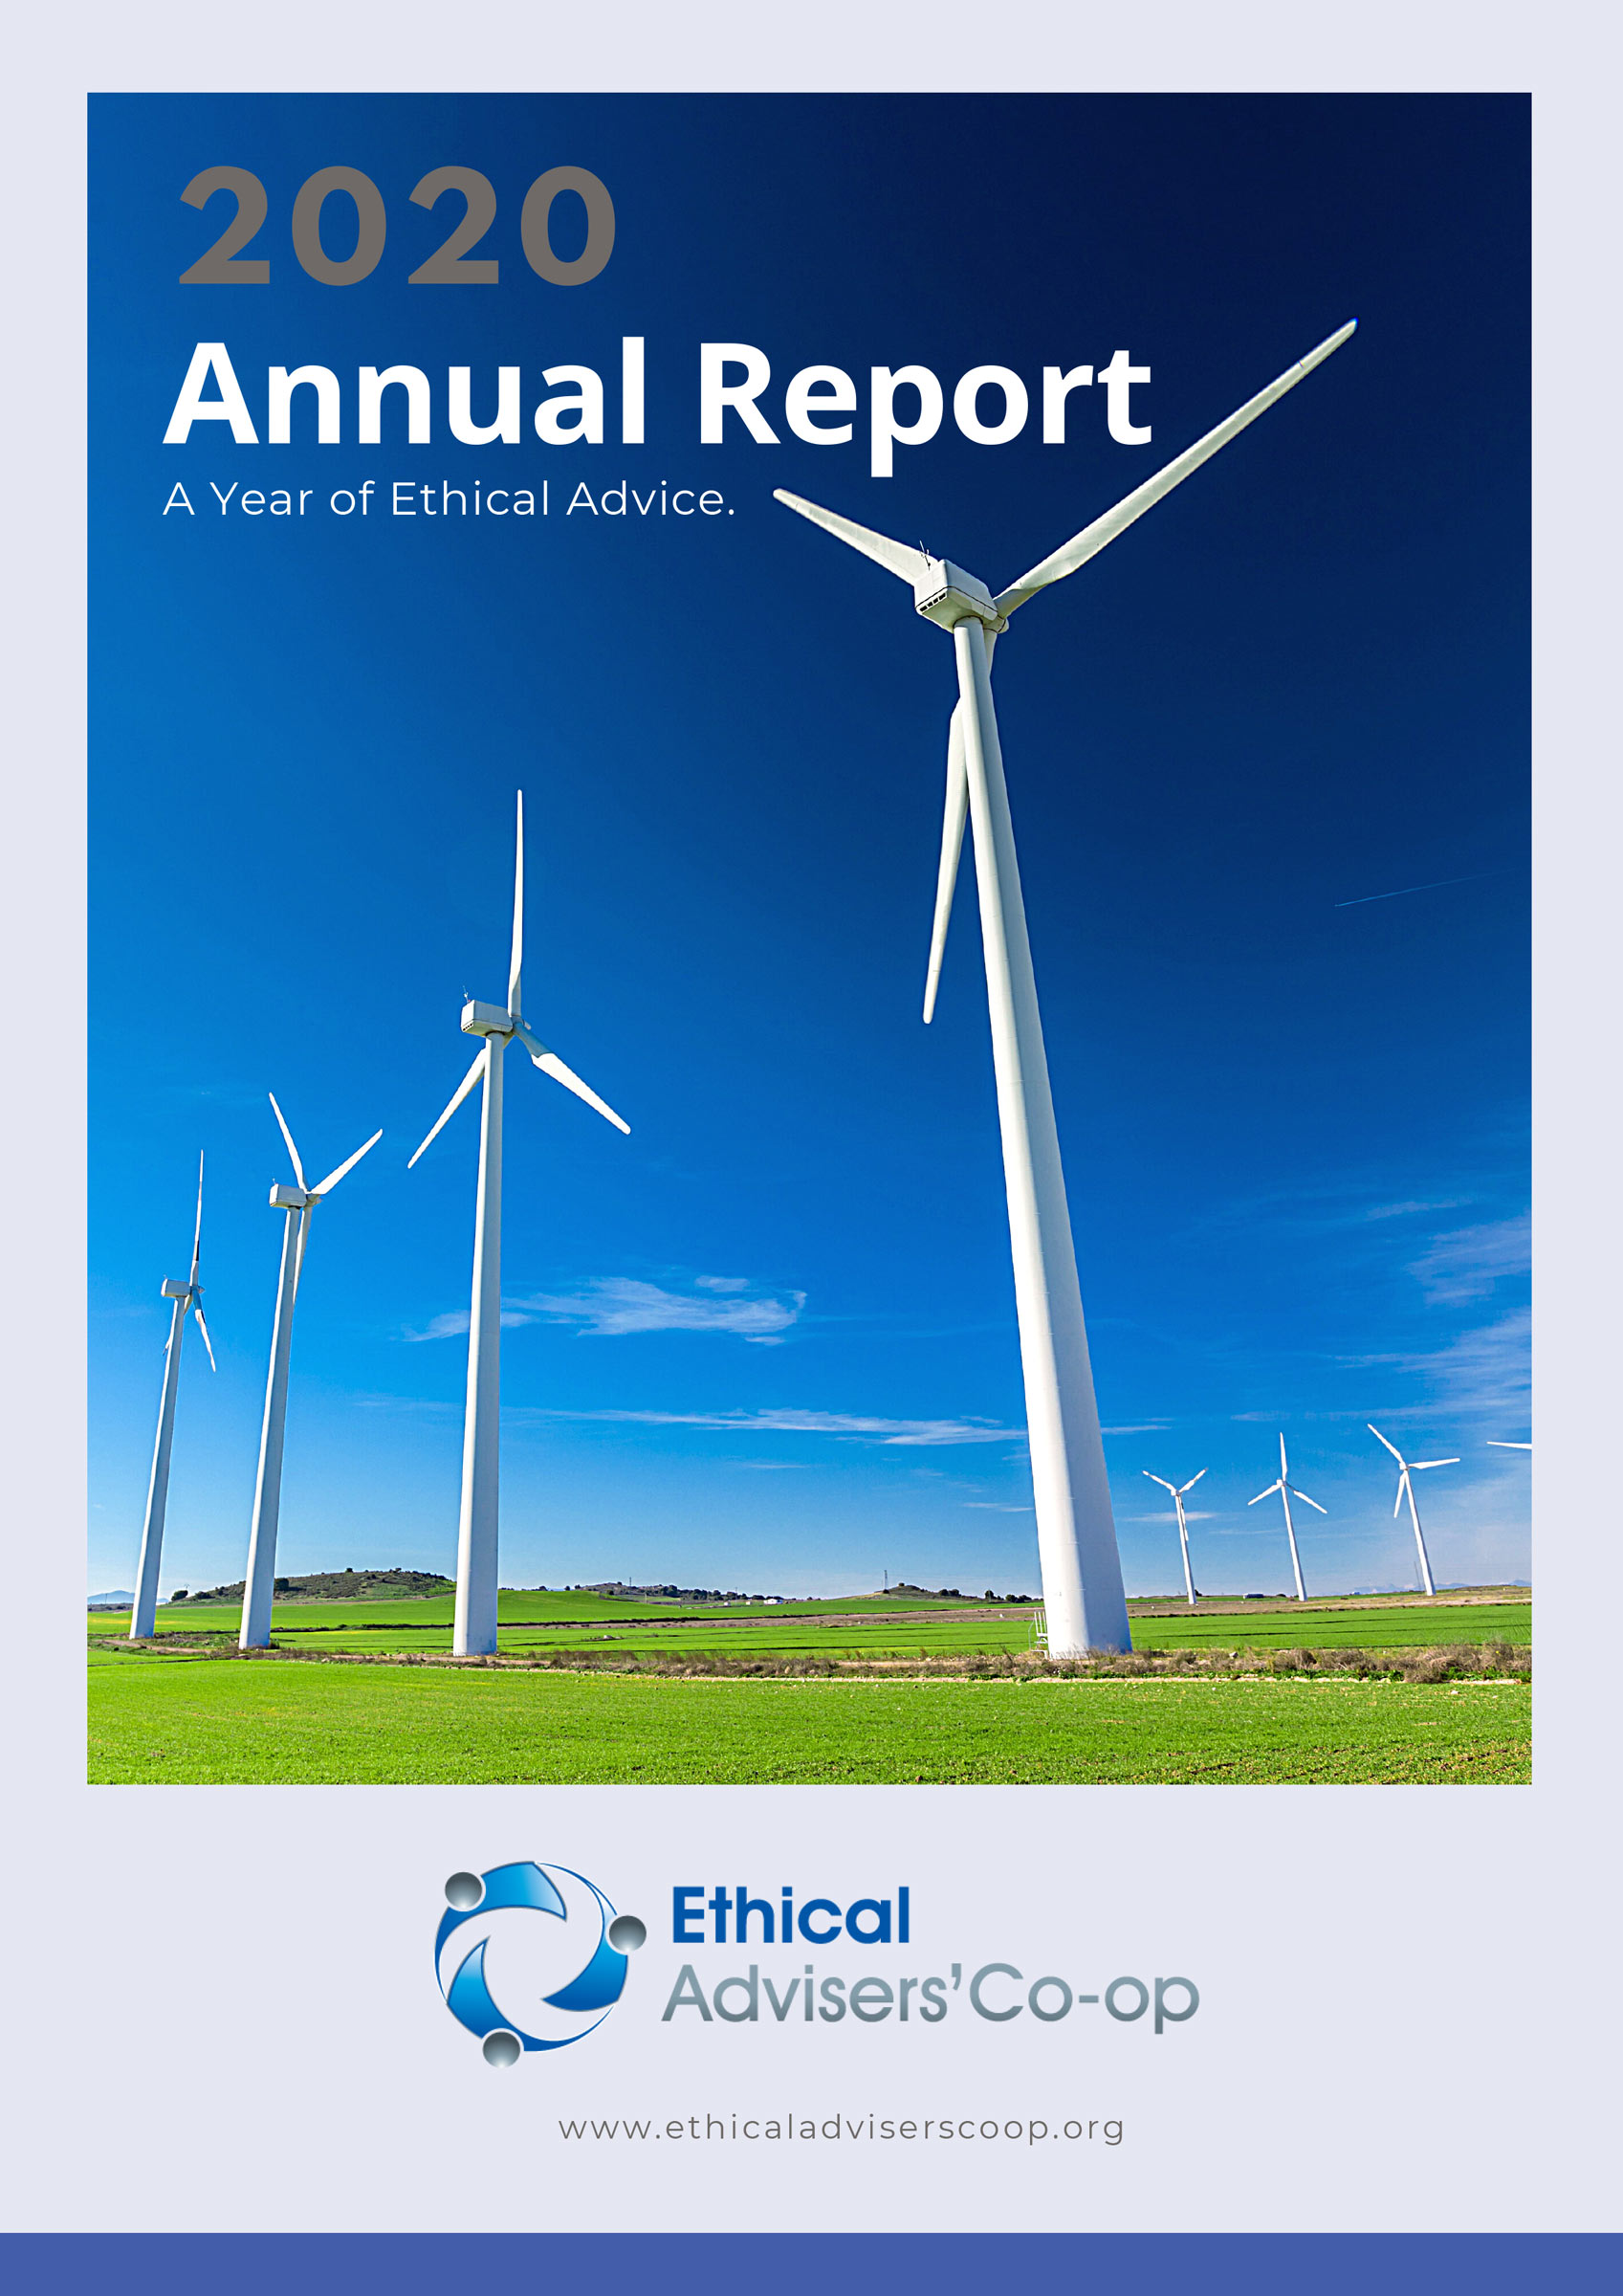 2020-EAC-Annual-Report---high-quality---v2-1